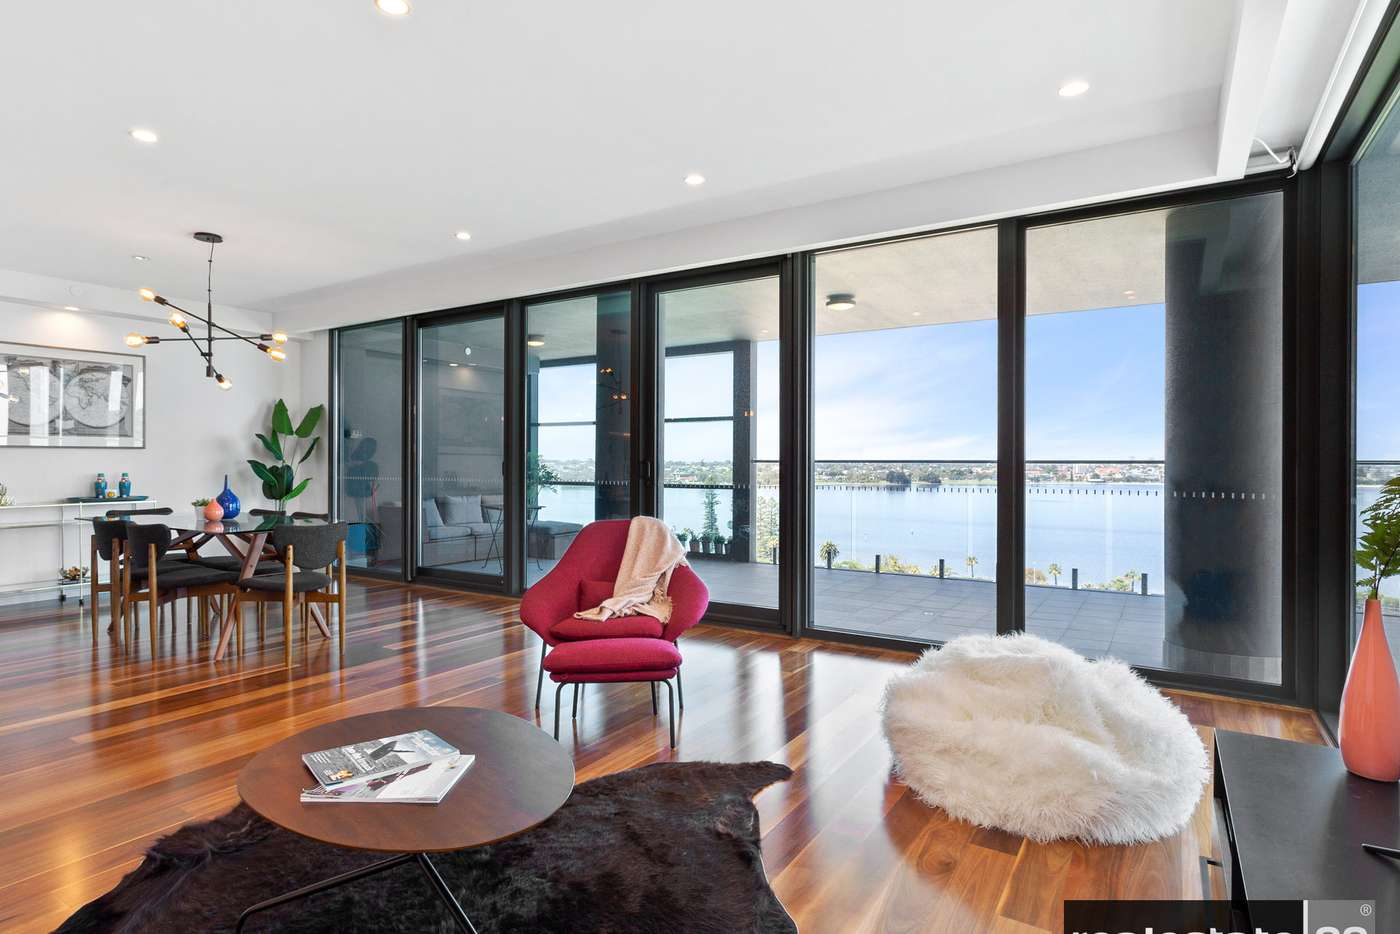 Main view of Homely apartment listing, 32/88 Terrace Road, East Perth WA 6004